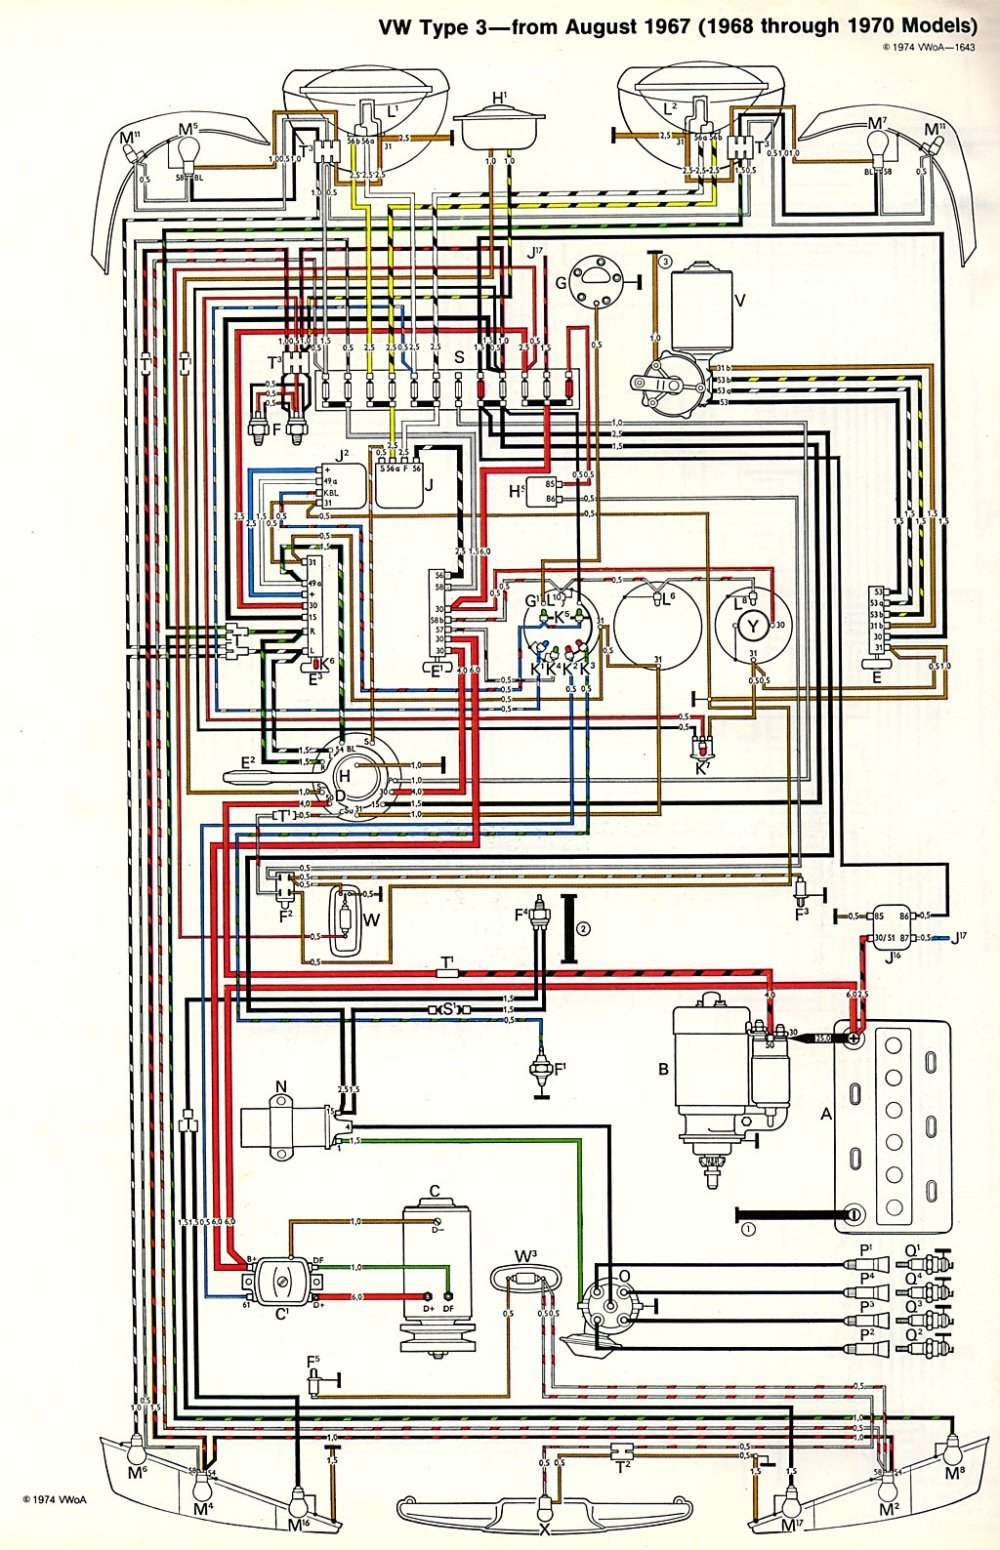 medium resolution of vw squareback fuse box ebook and manual referencethesamba com type 3 wiring diagrams vw squareback fuse